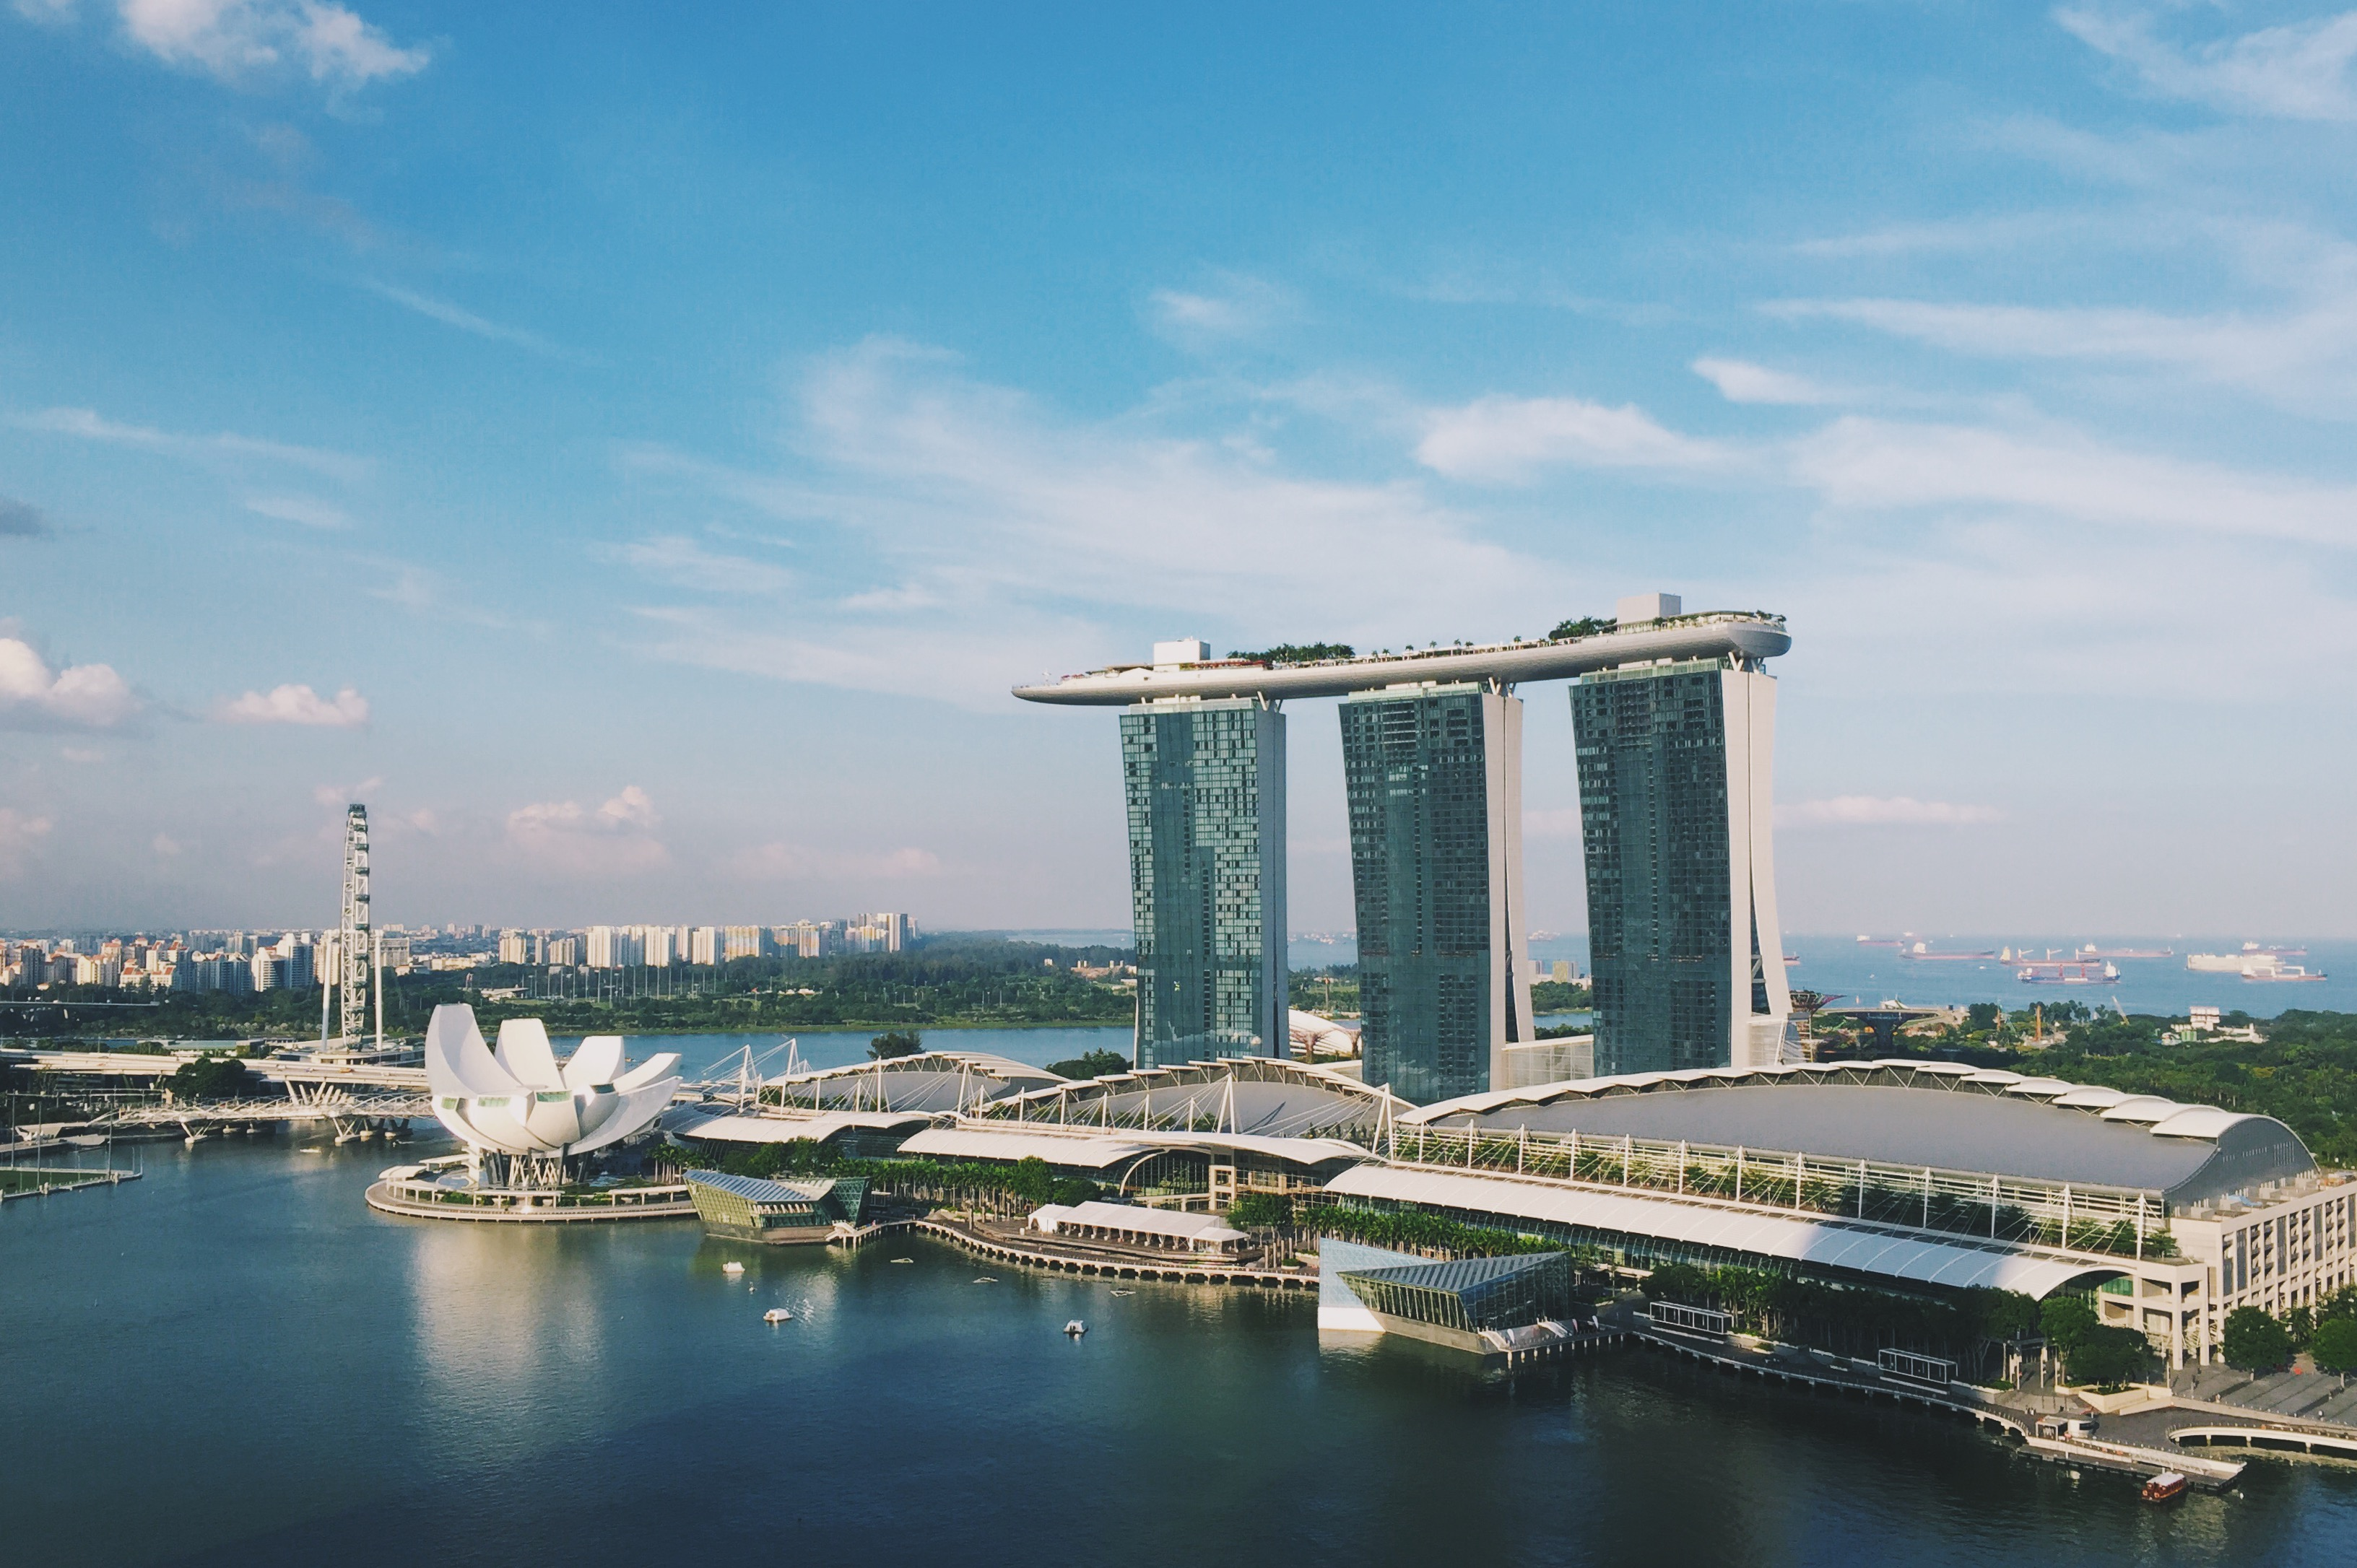 Singapore's economy could shrink between 5 to 7 per cent in 2020. Photo: Connected to India